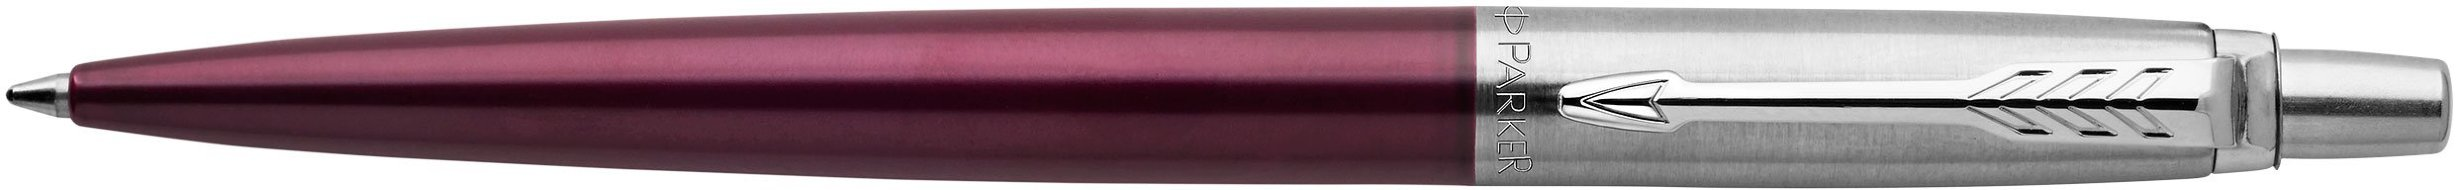 Шариковая ручка Parker Jotter Core K63, Portobello Purple CT